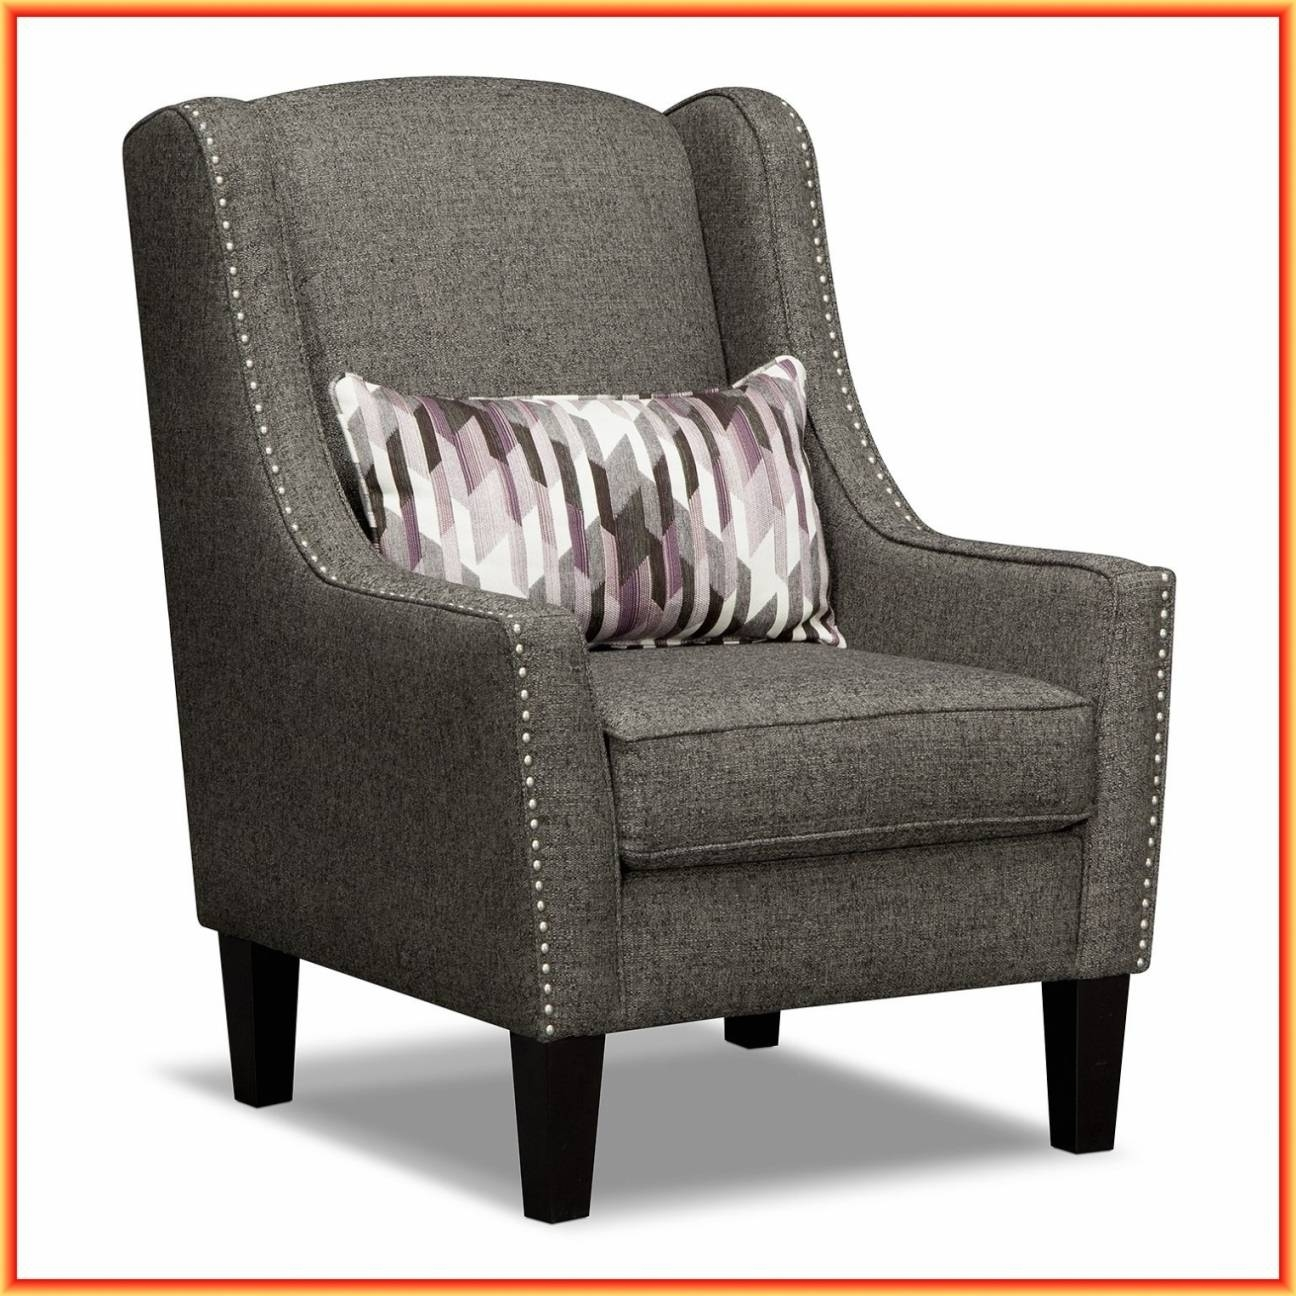 Small Armchair Best 30 43 Of Small Armchairs Small Spaces